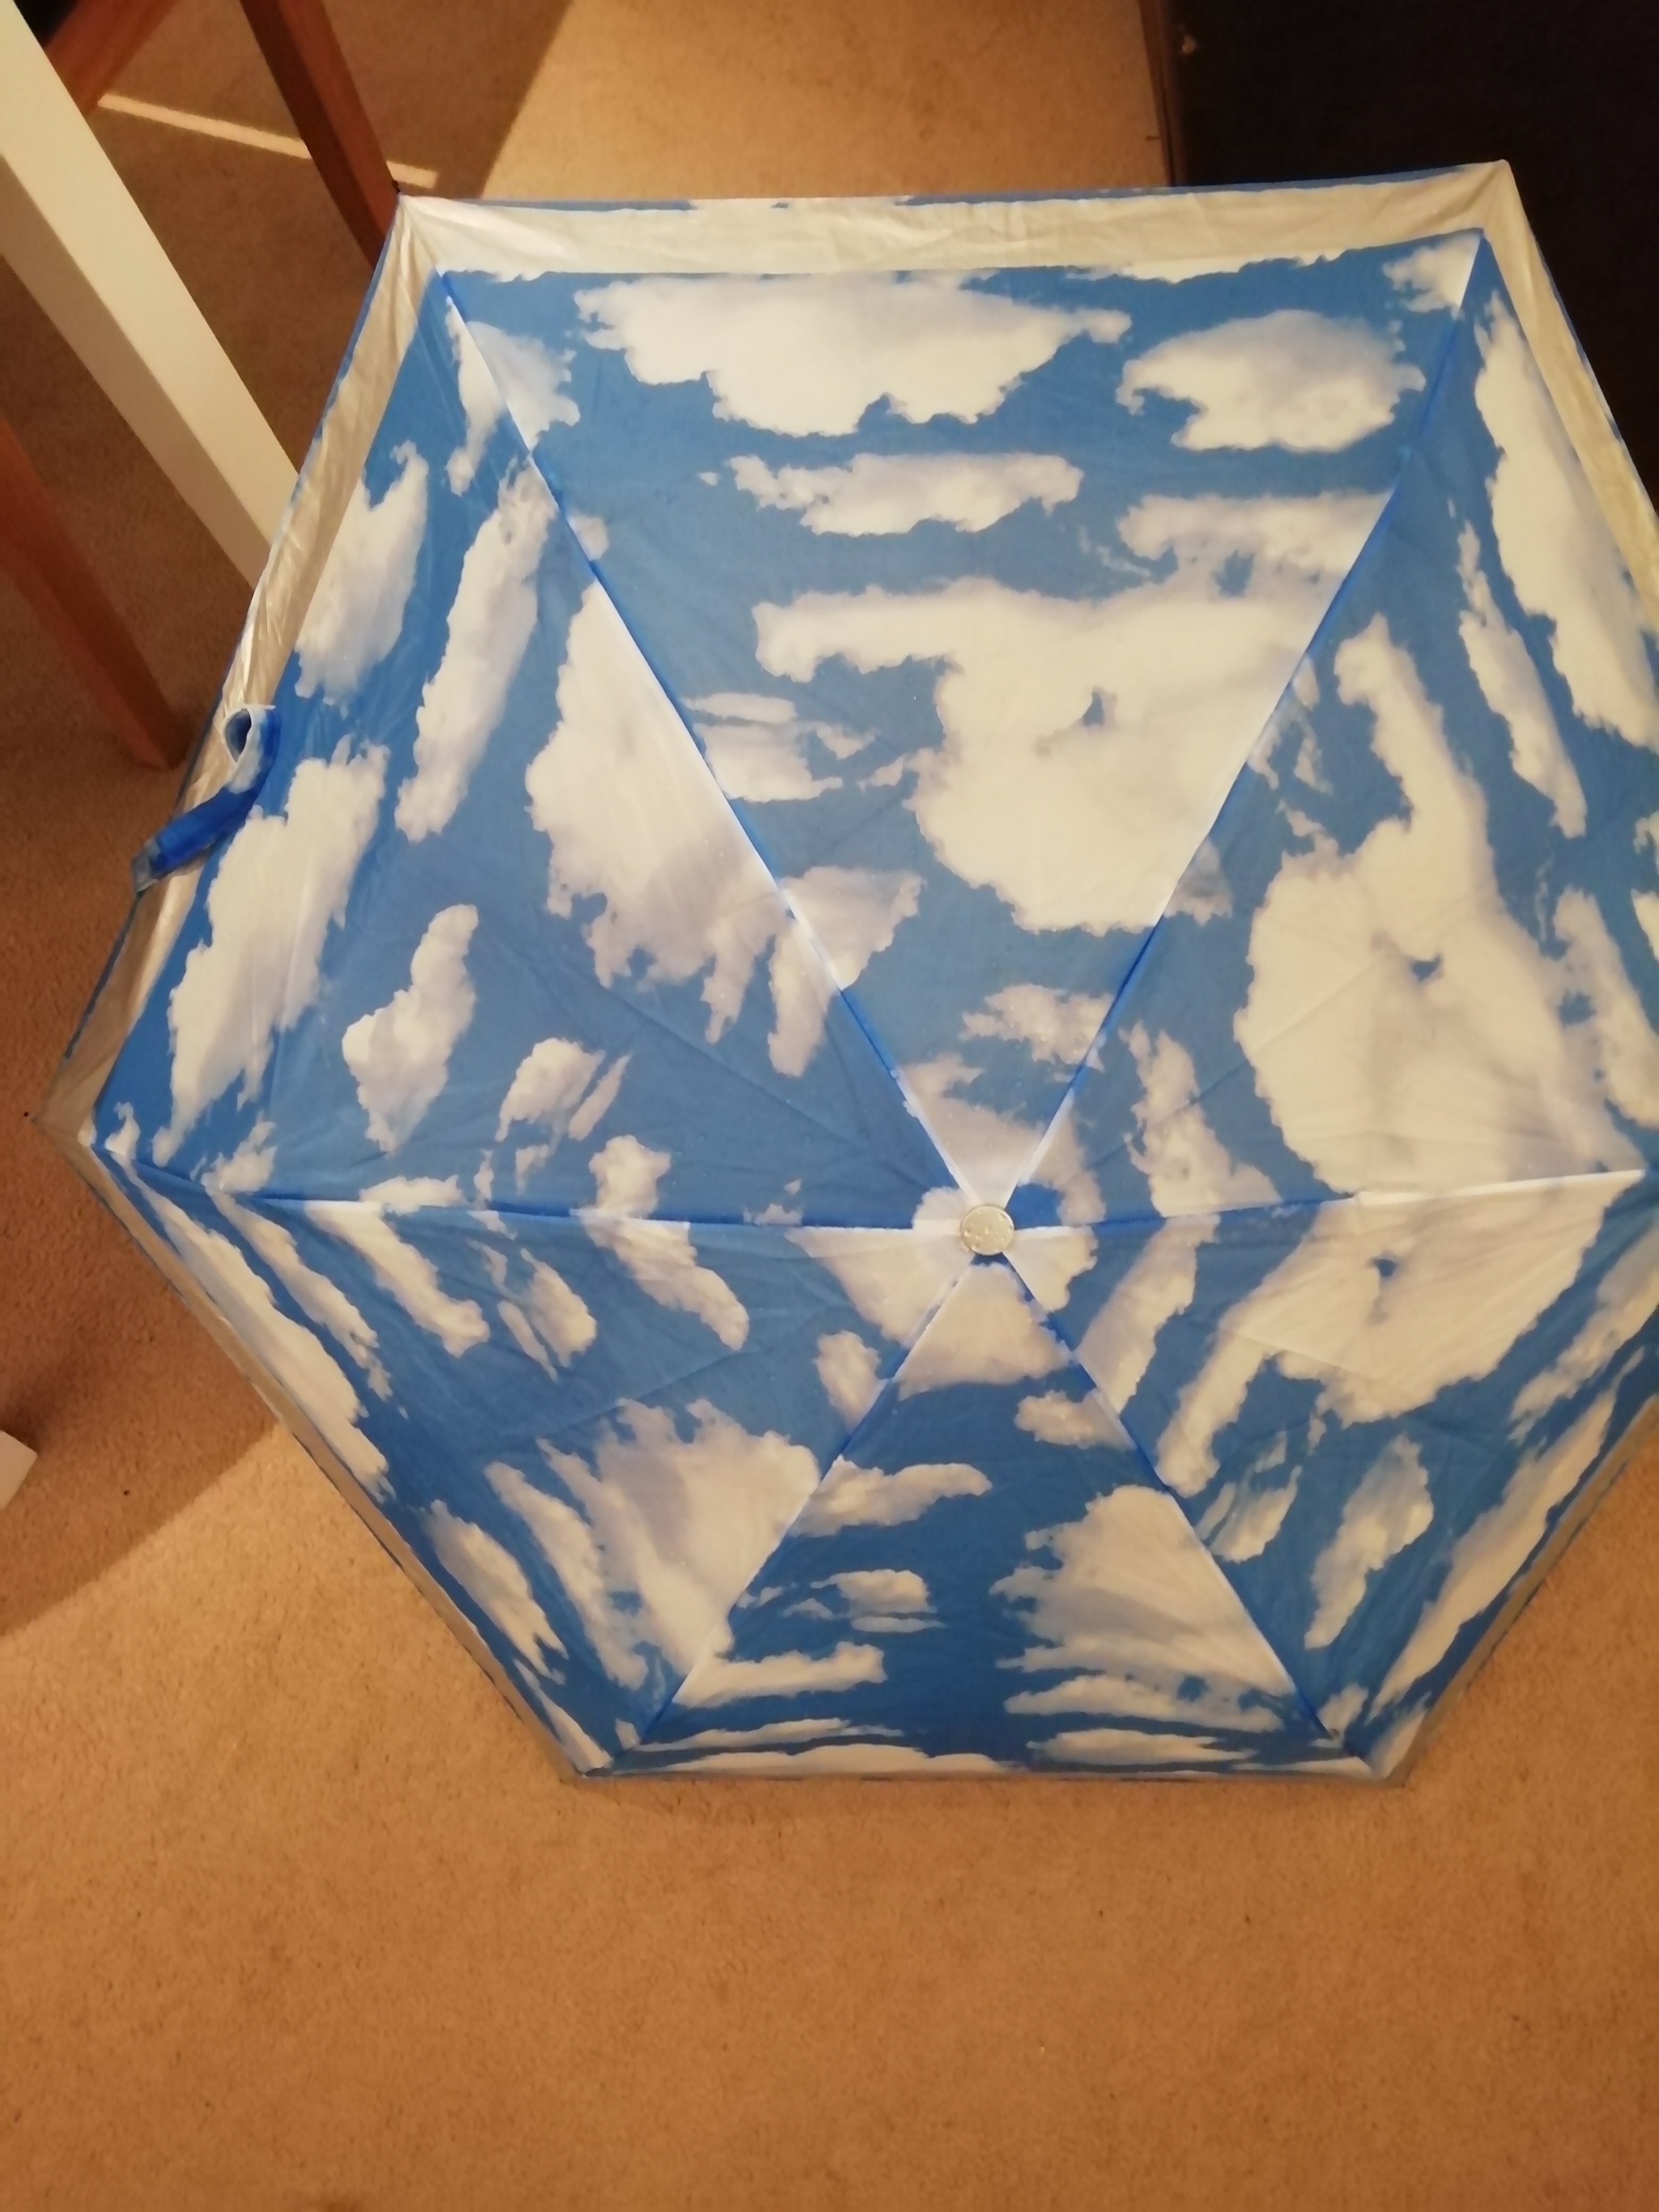 My umbrella which has blue sky and fluffy white clouds on it